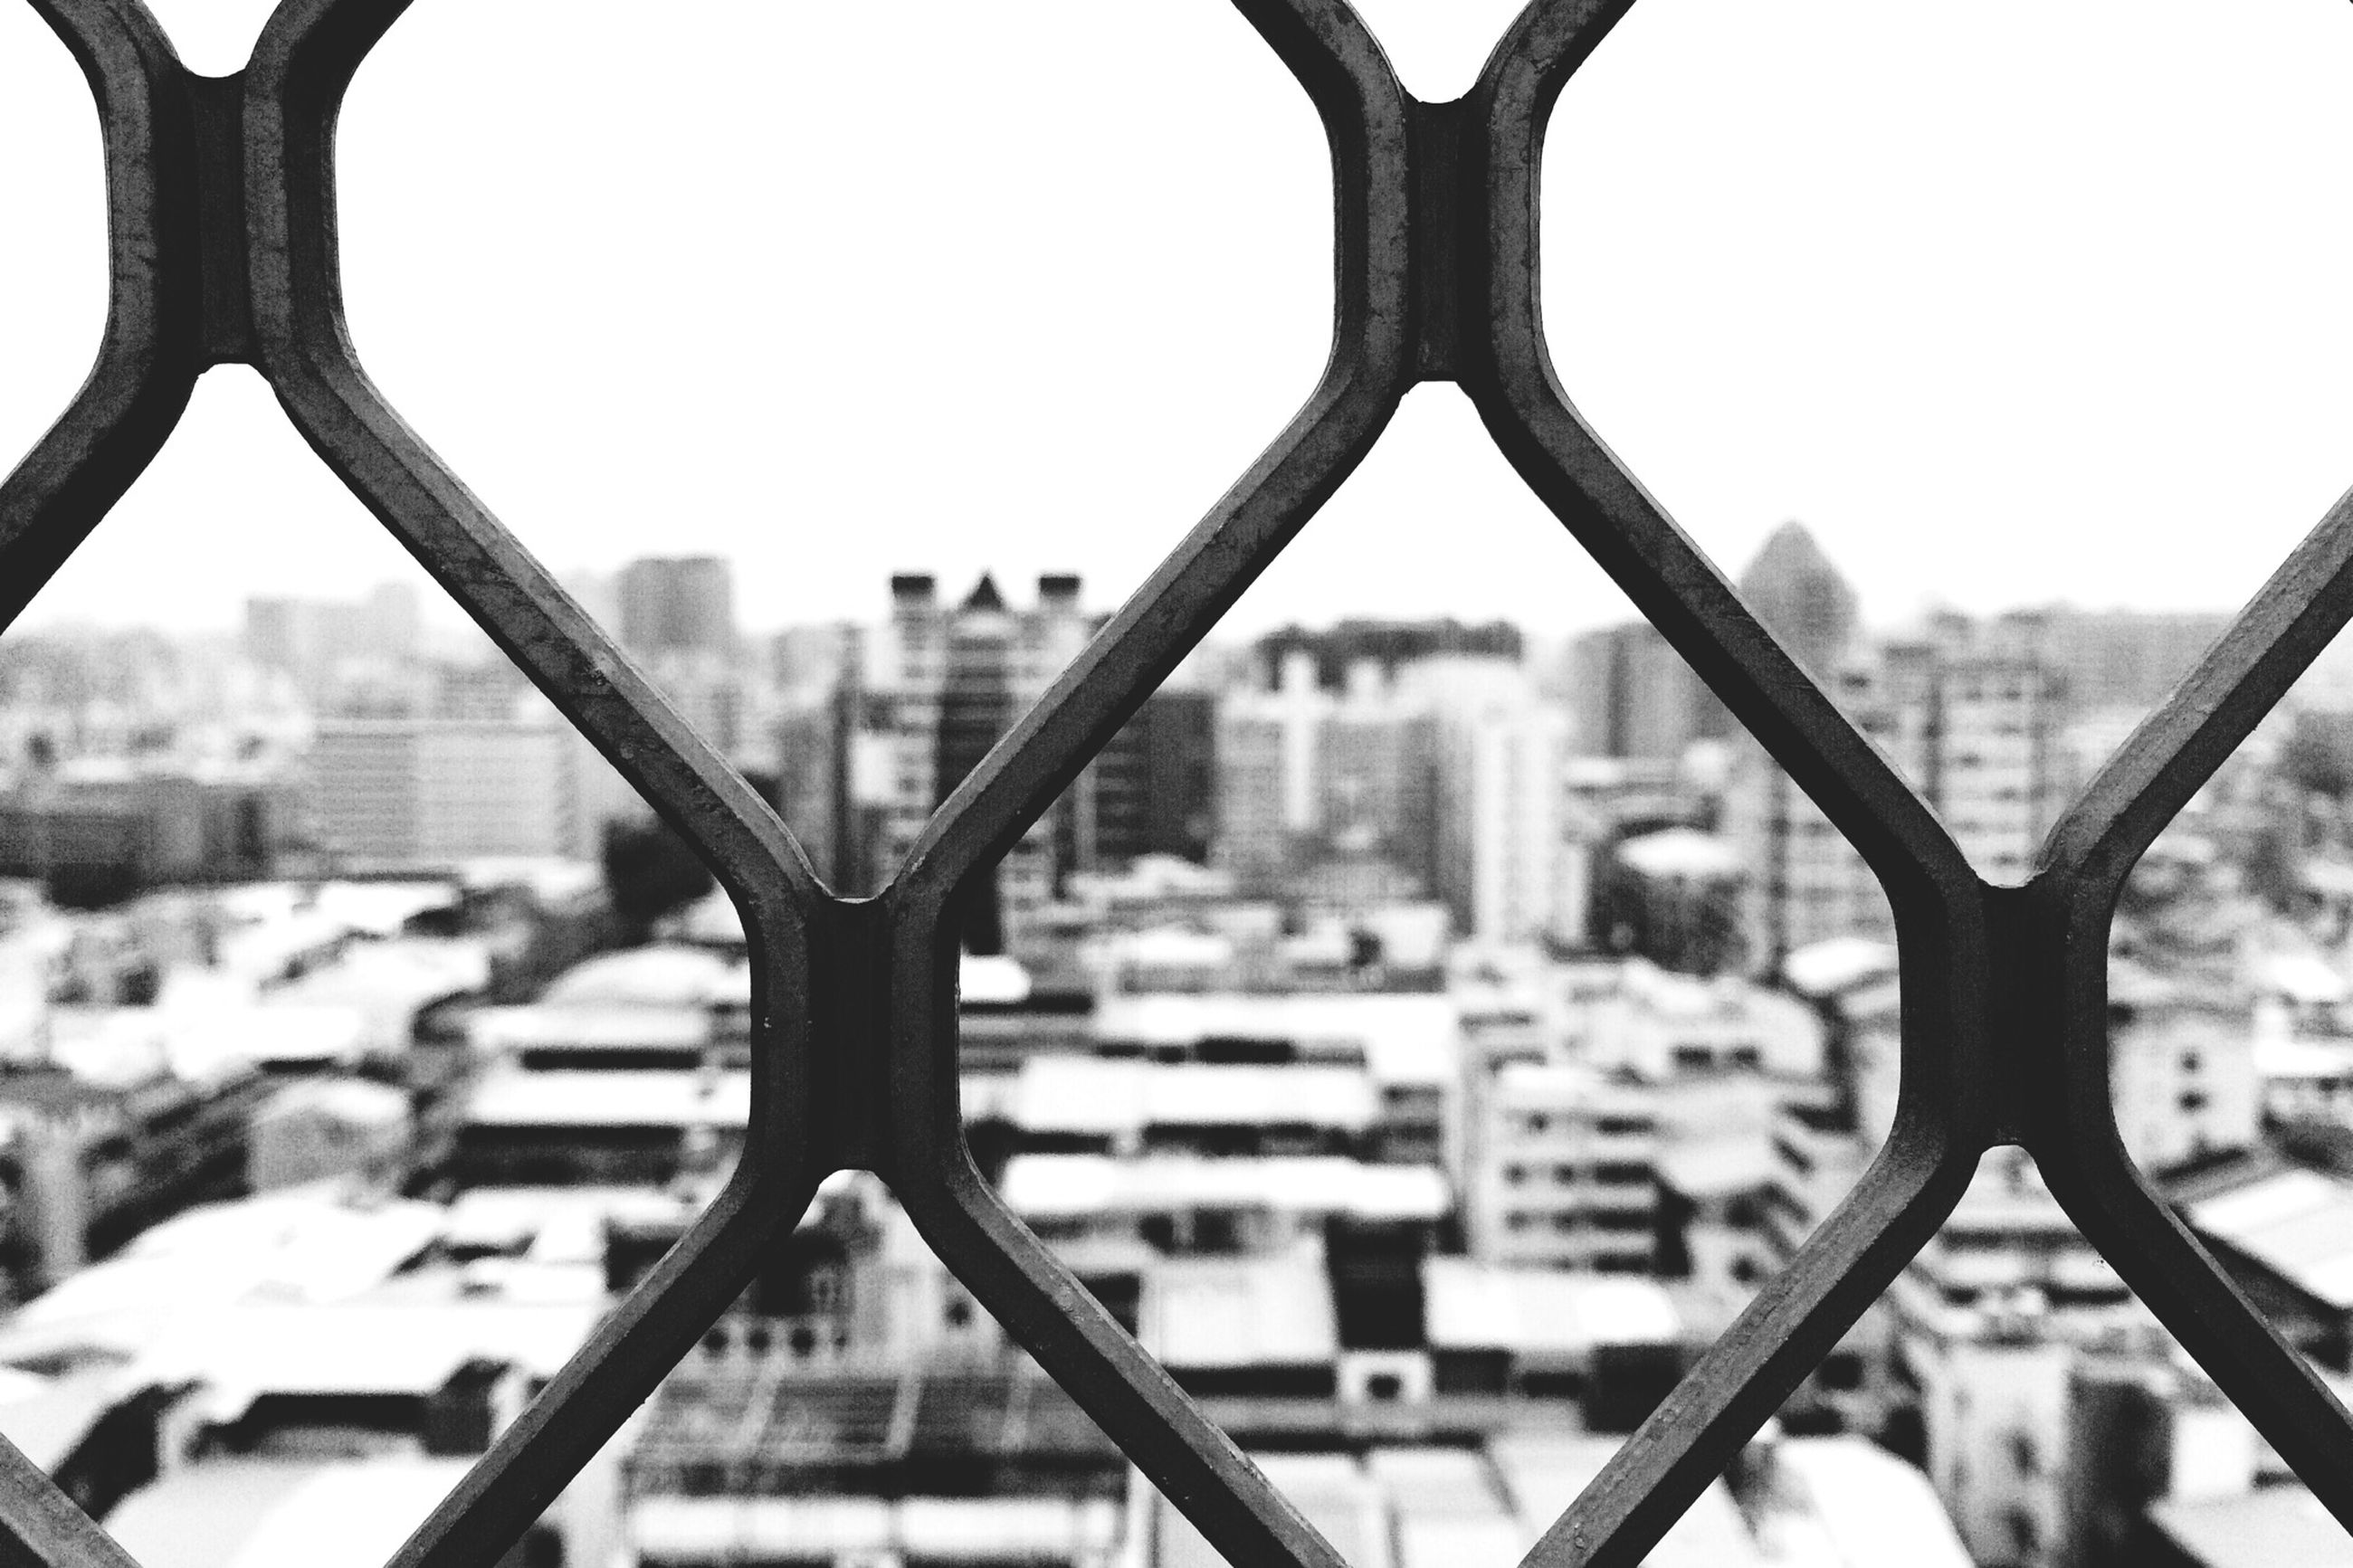 metal, focus on foreground, architecture, built structure, city, cityscape, chainlink fence, clear sky, building exterior, river, close-up, fence, protection, sky, railing, metallic, safety, day, water, connection